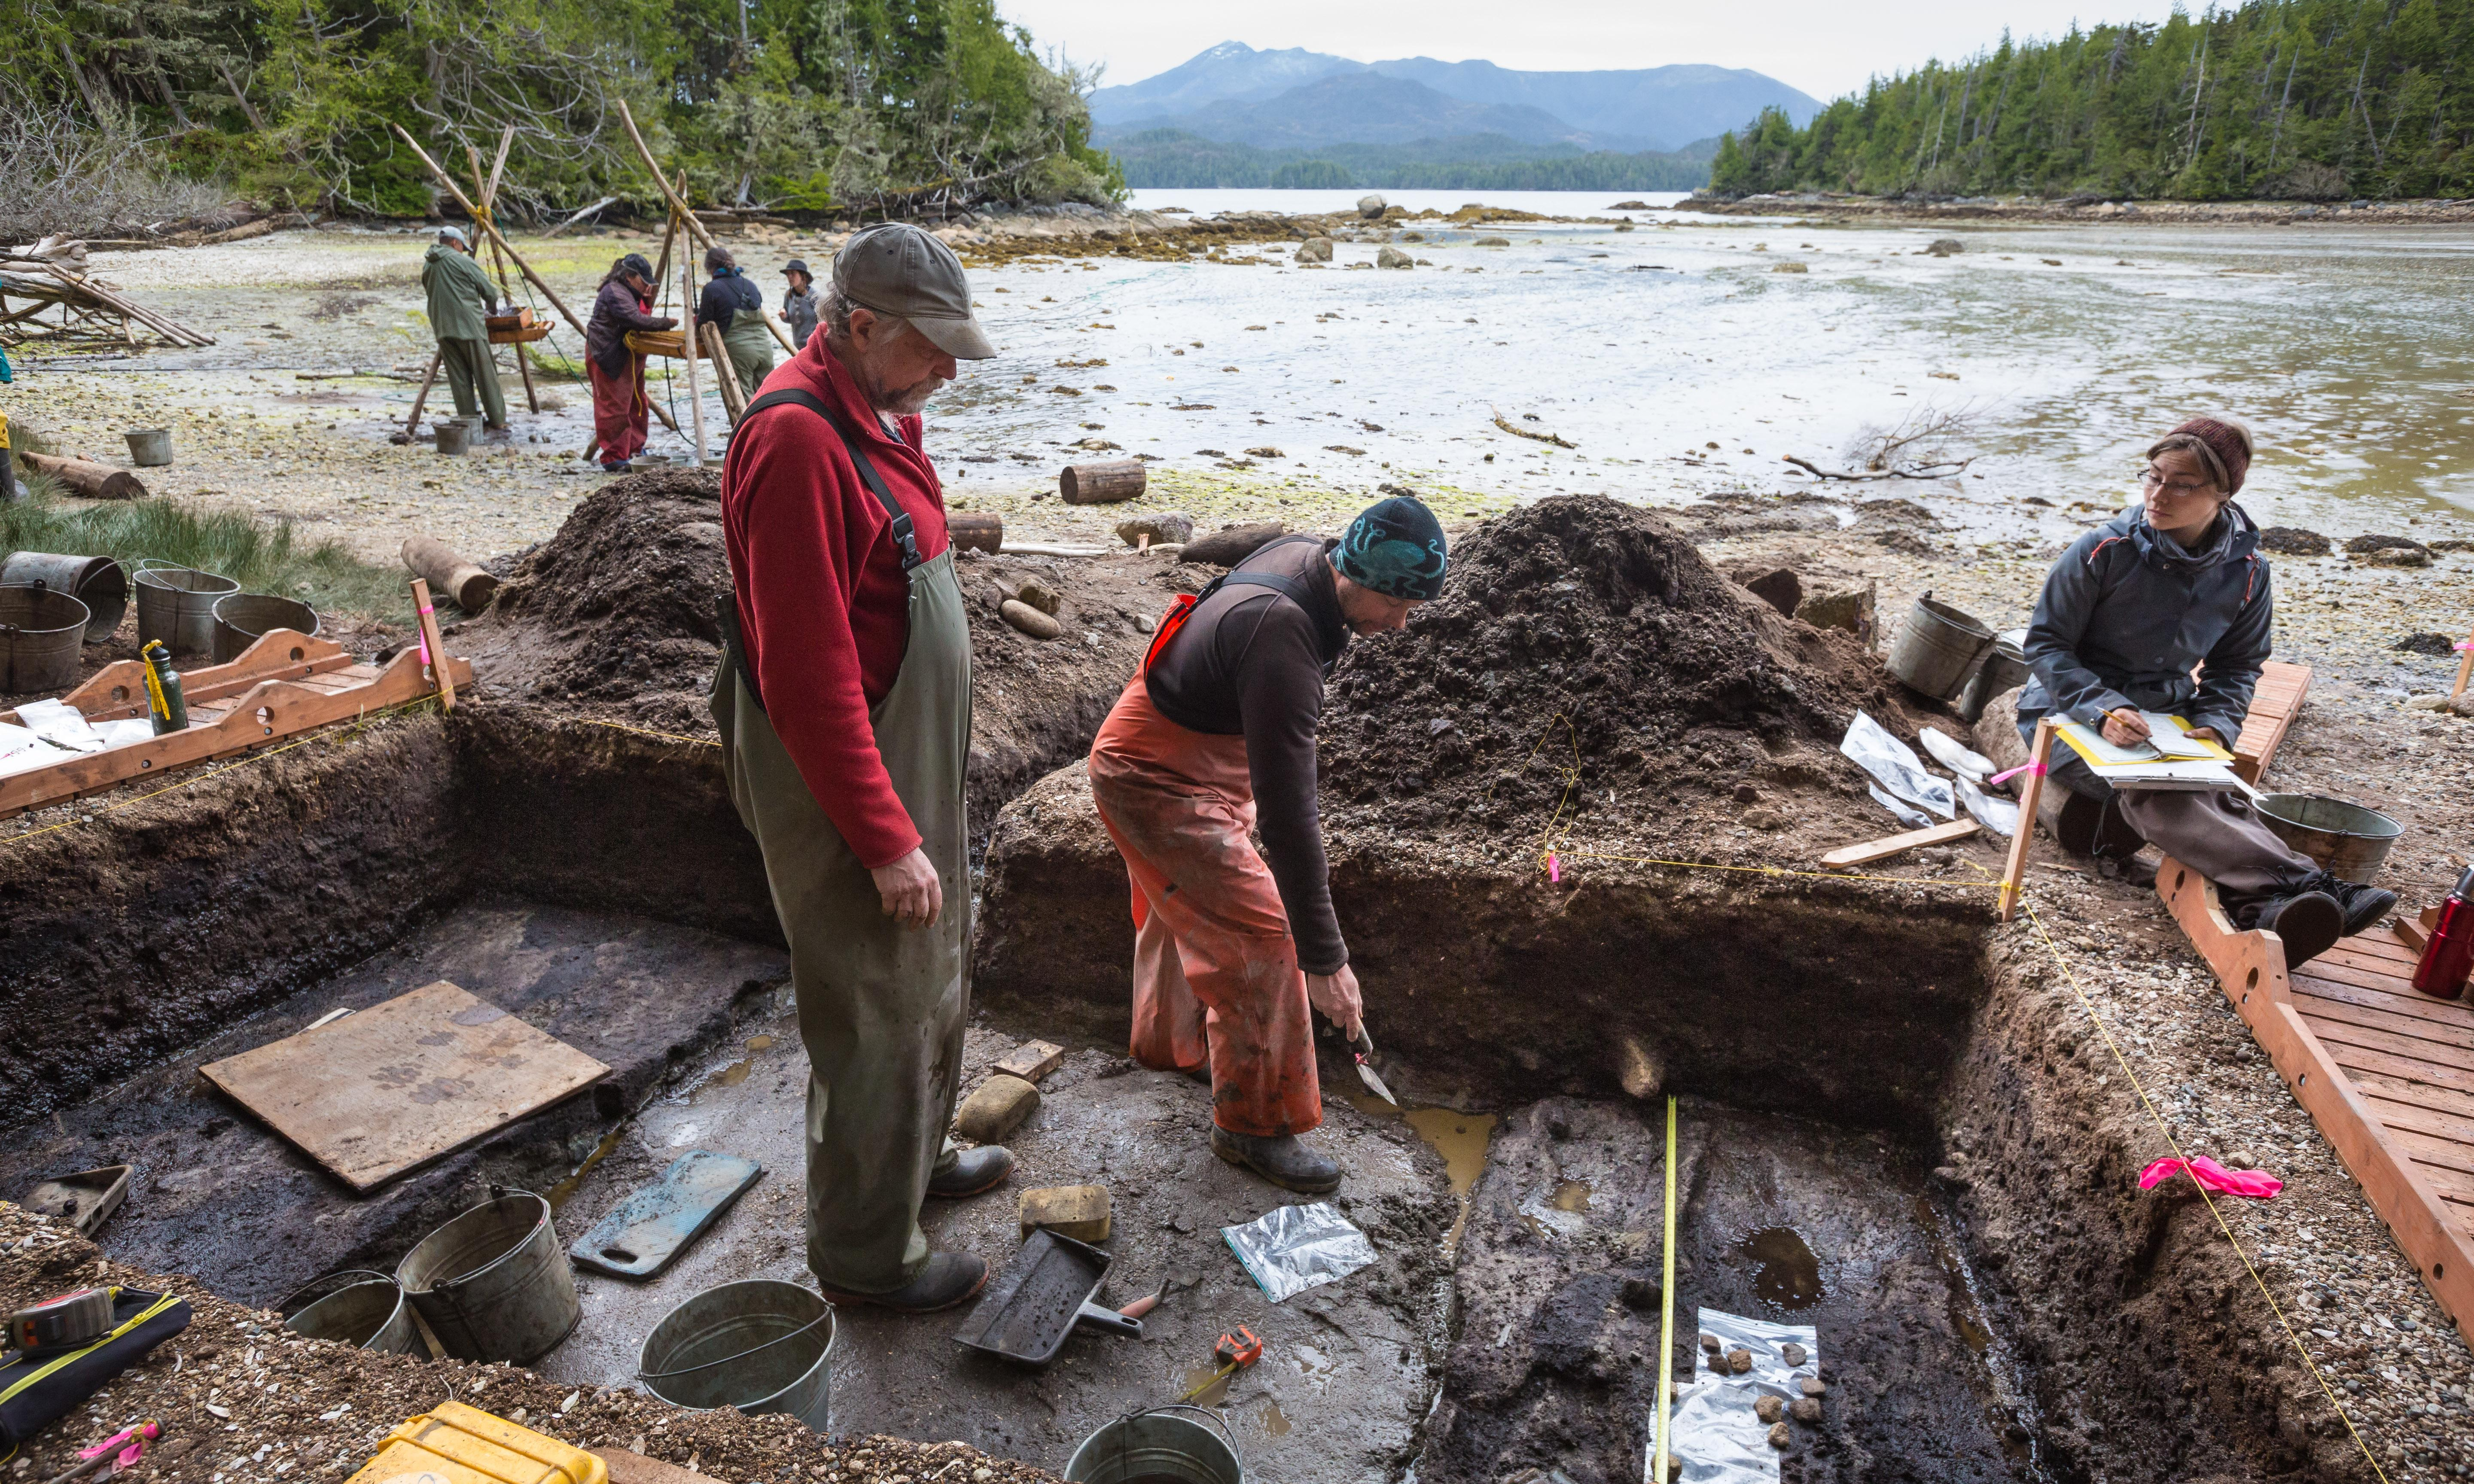 Prehistoric human footprints unearthed on Canada shoreline